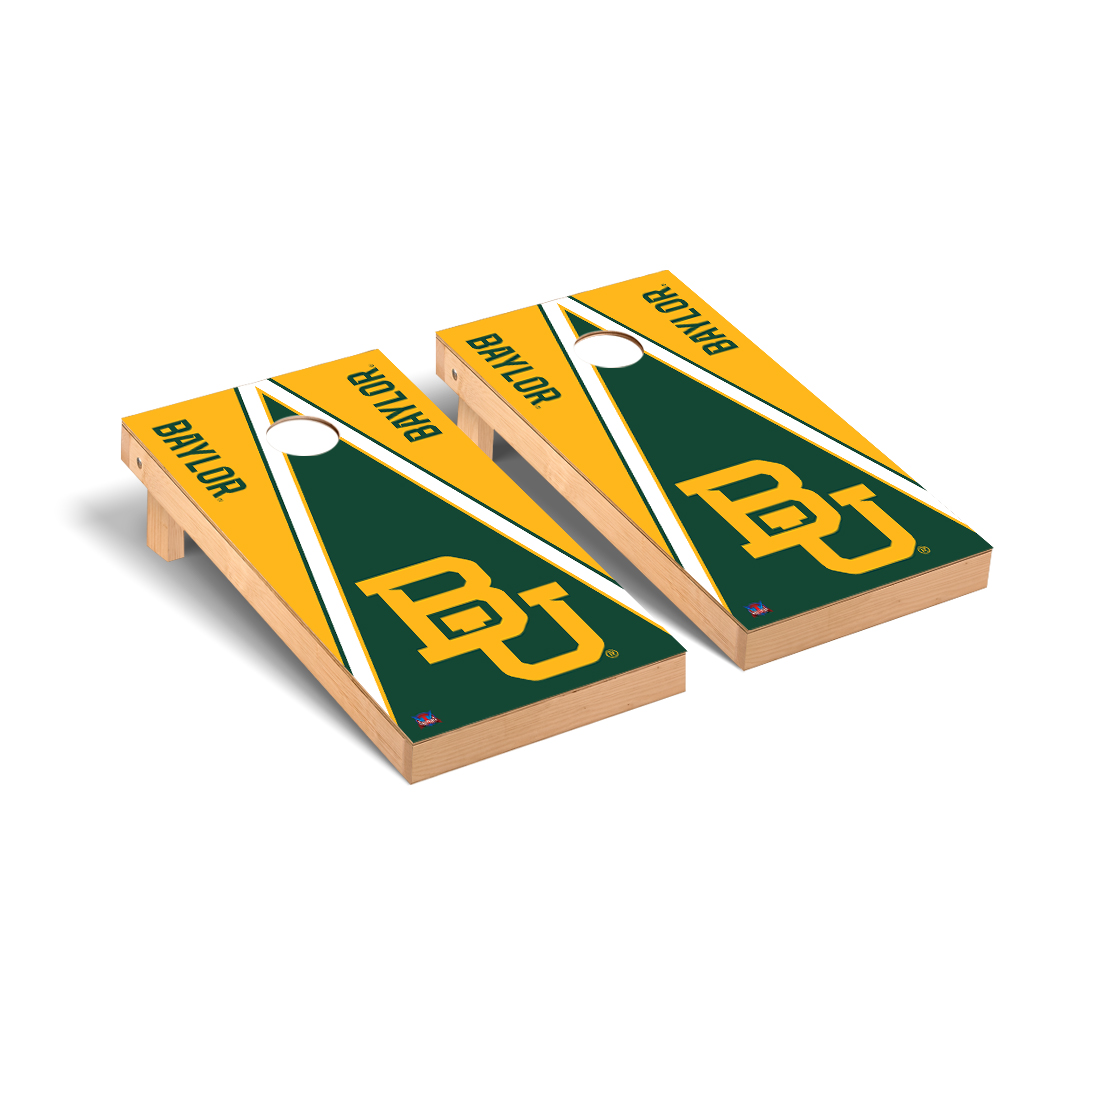 Baylor Bears Cornhole Game Set Triangle Version